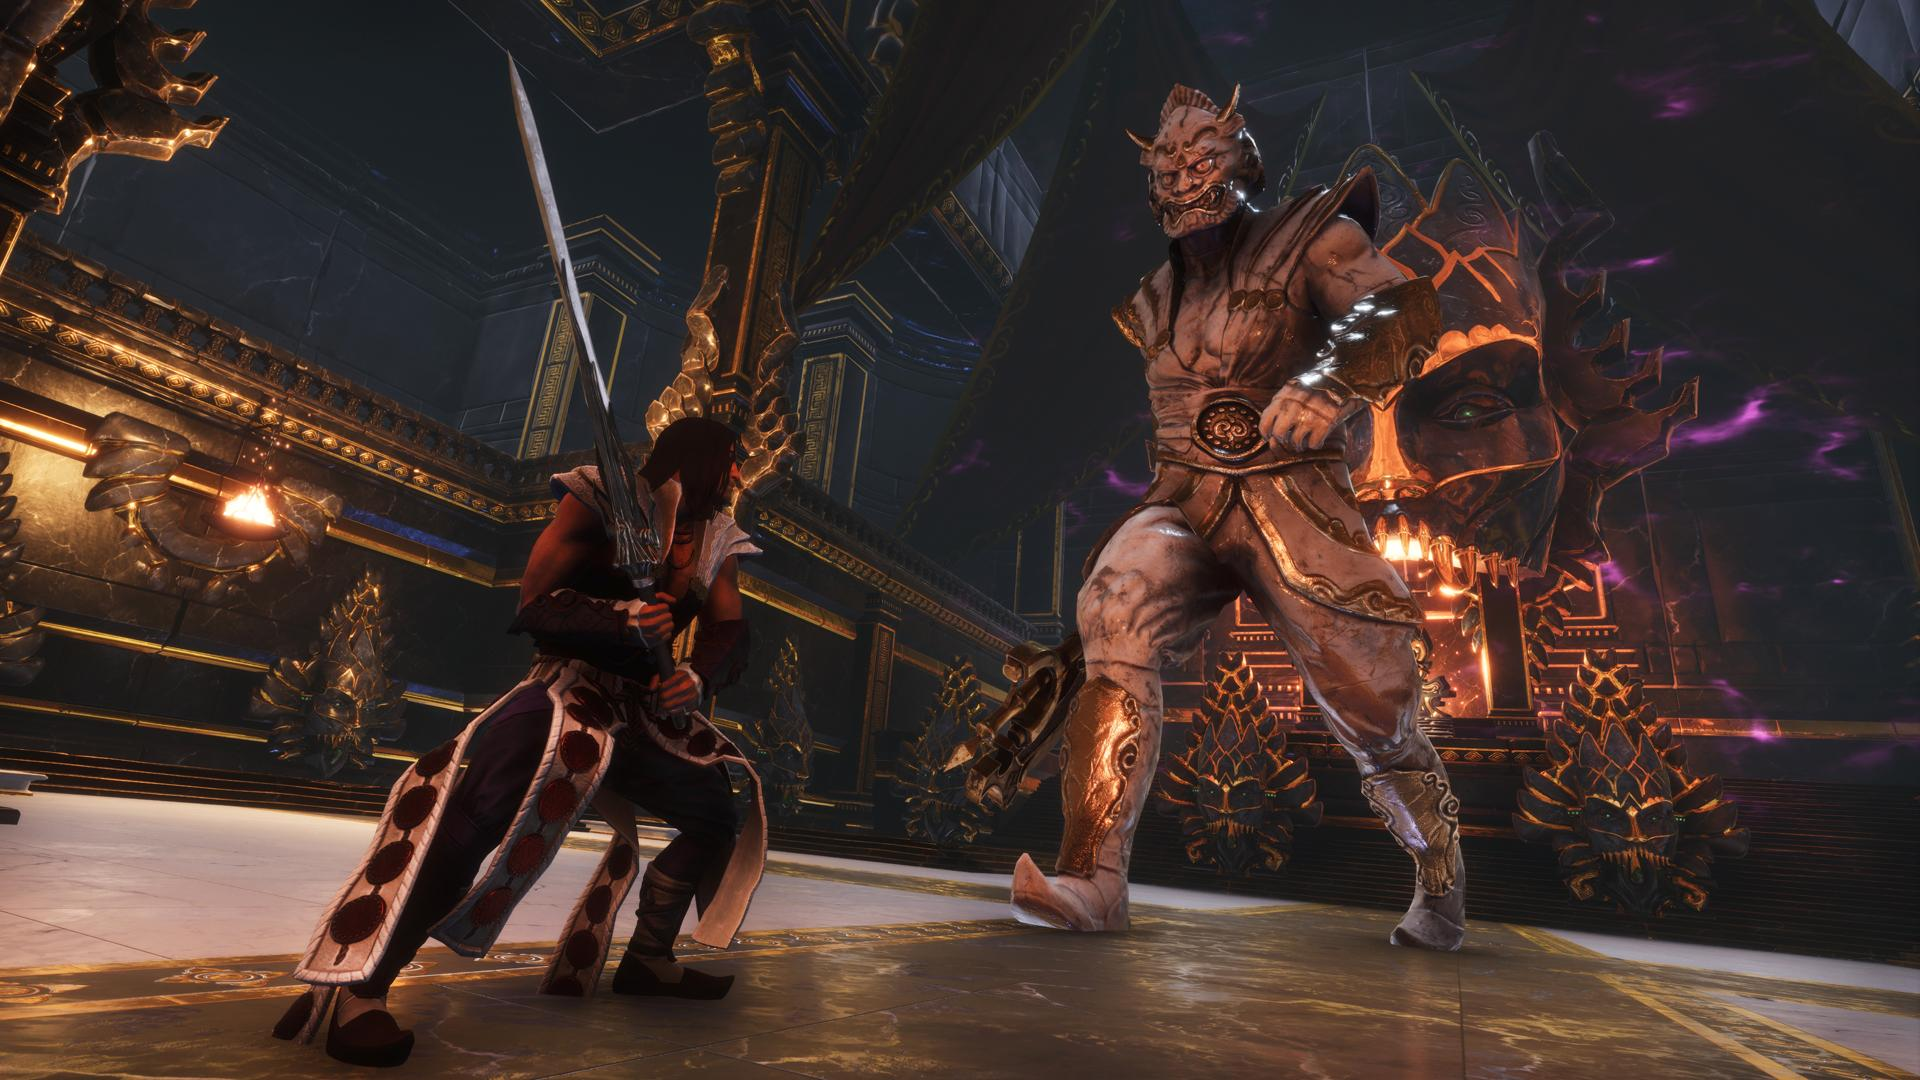 Conan Exiles is a survival game that features challenging combat against intimidating enemies in a vast world filled with explorable dungeons